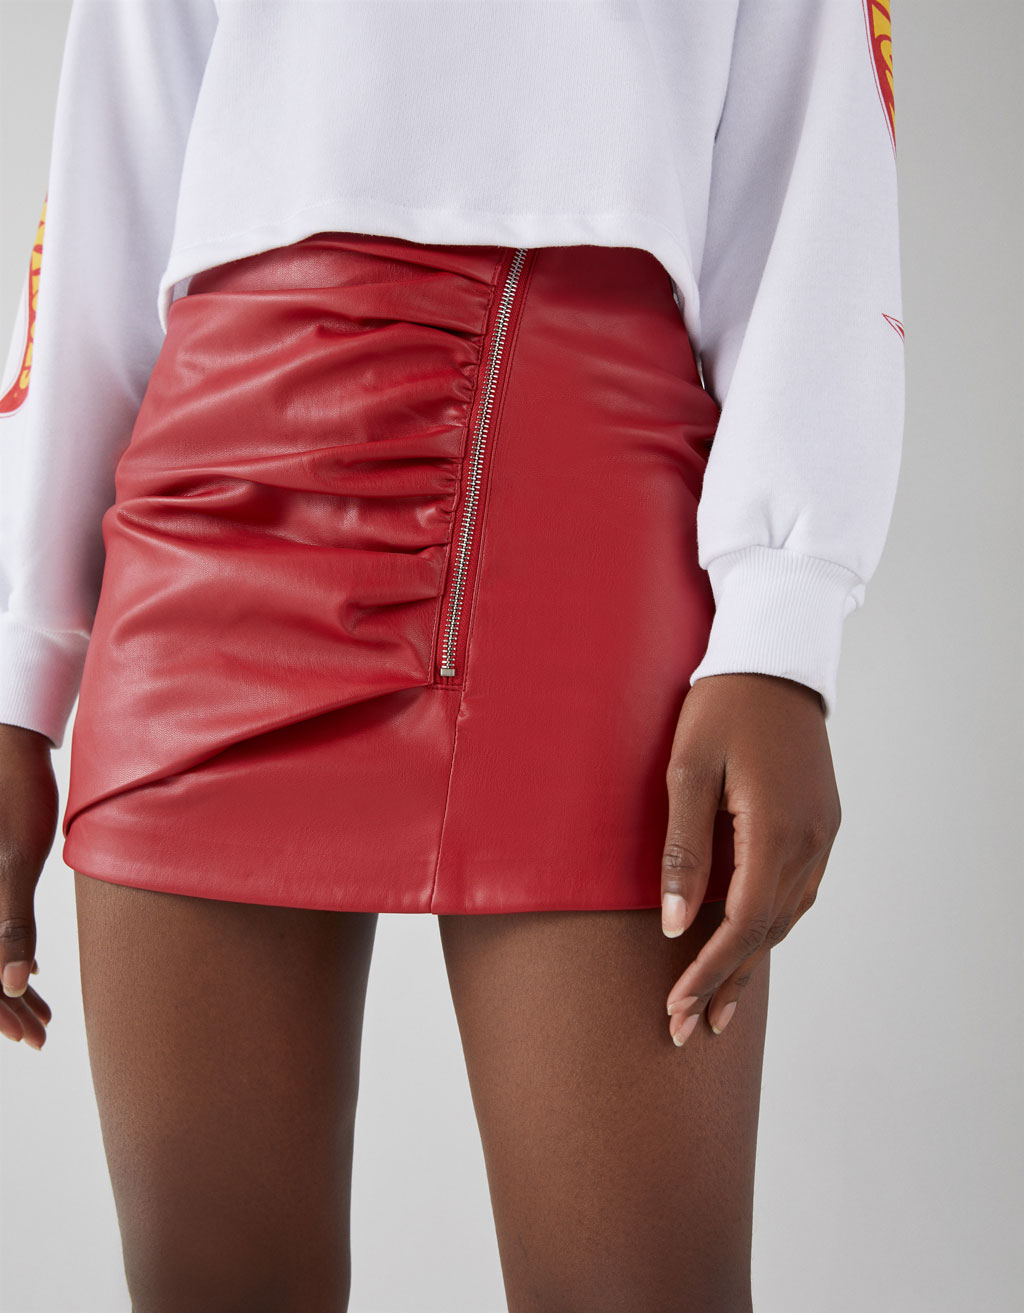 Faux leather skirt with side zip